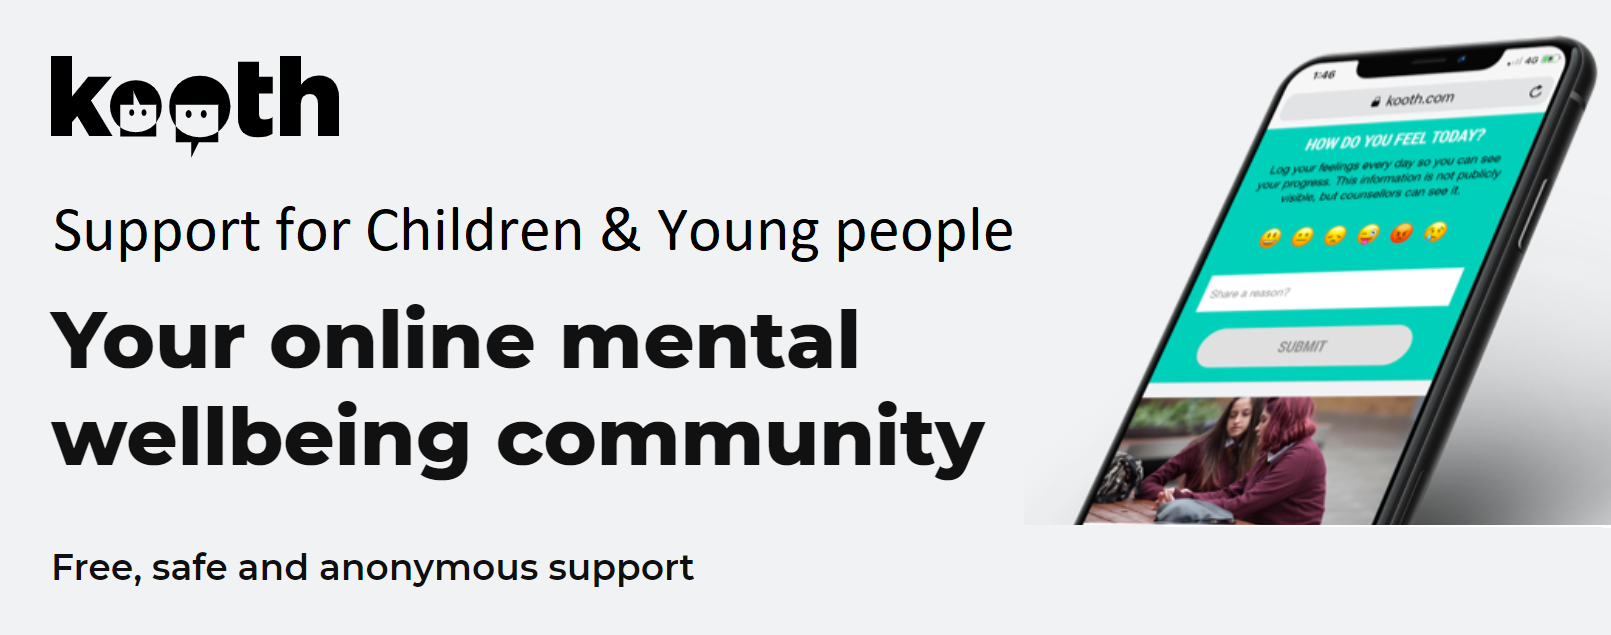 Online support for Children and young people